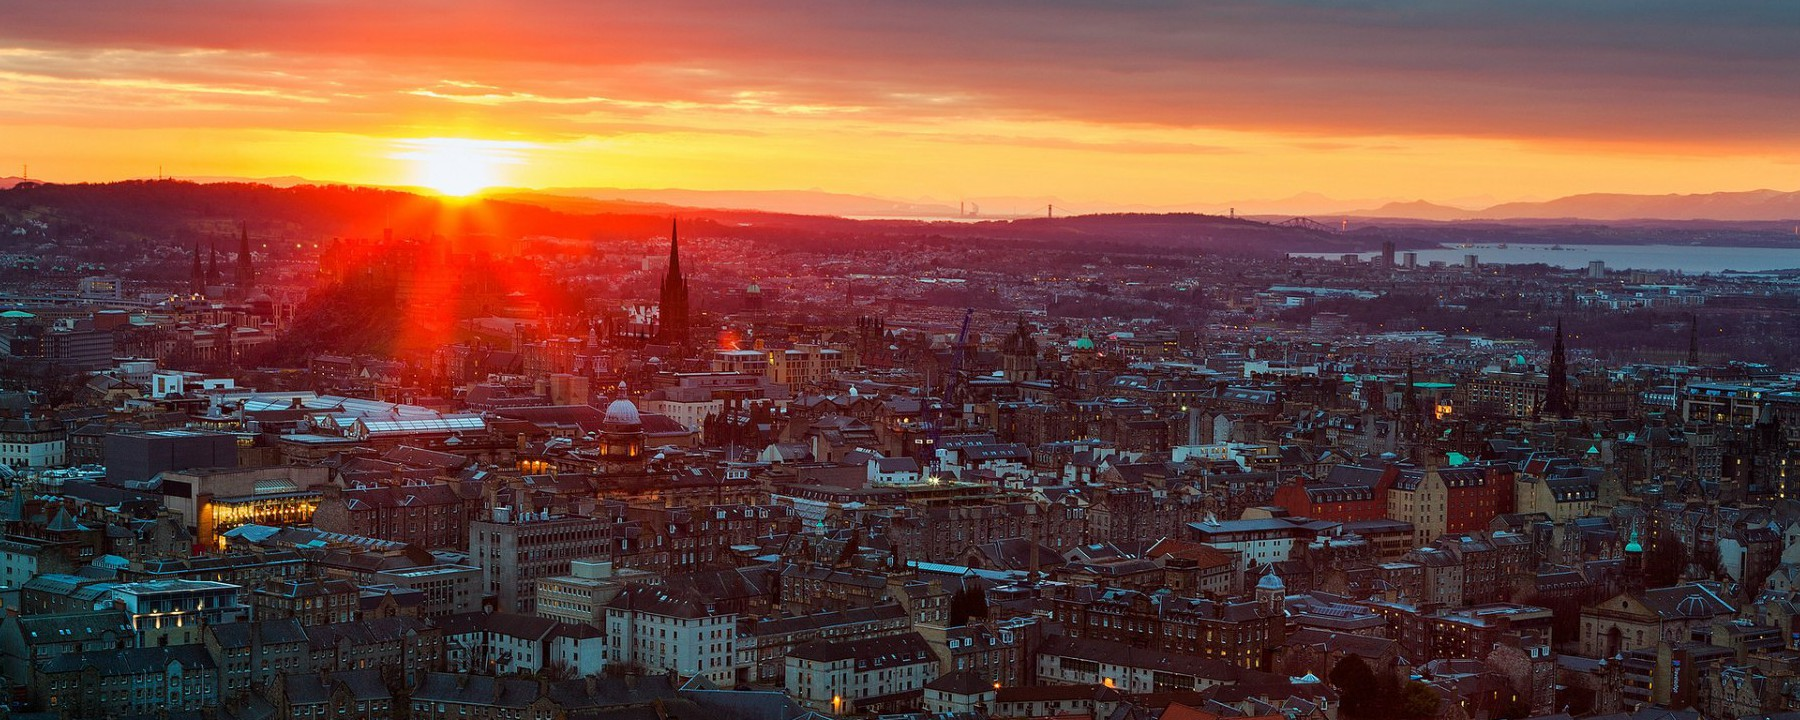 Cities_Sunset_in_Edinburgh__Scotland_096196_